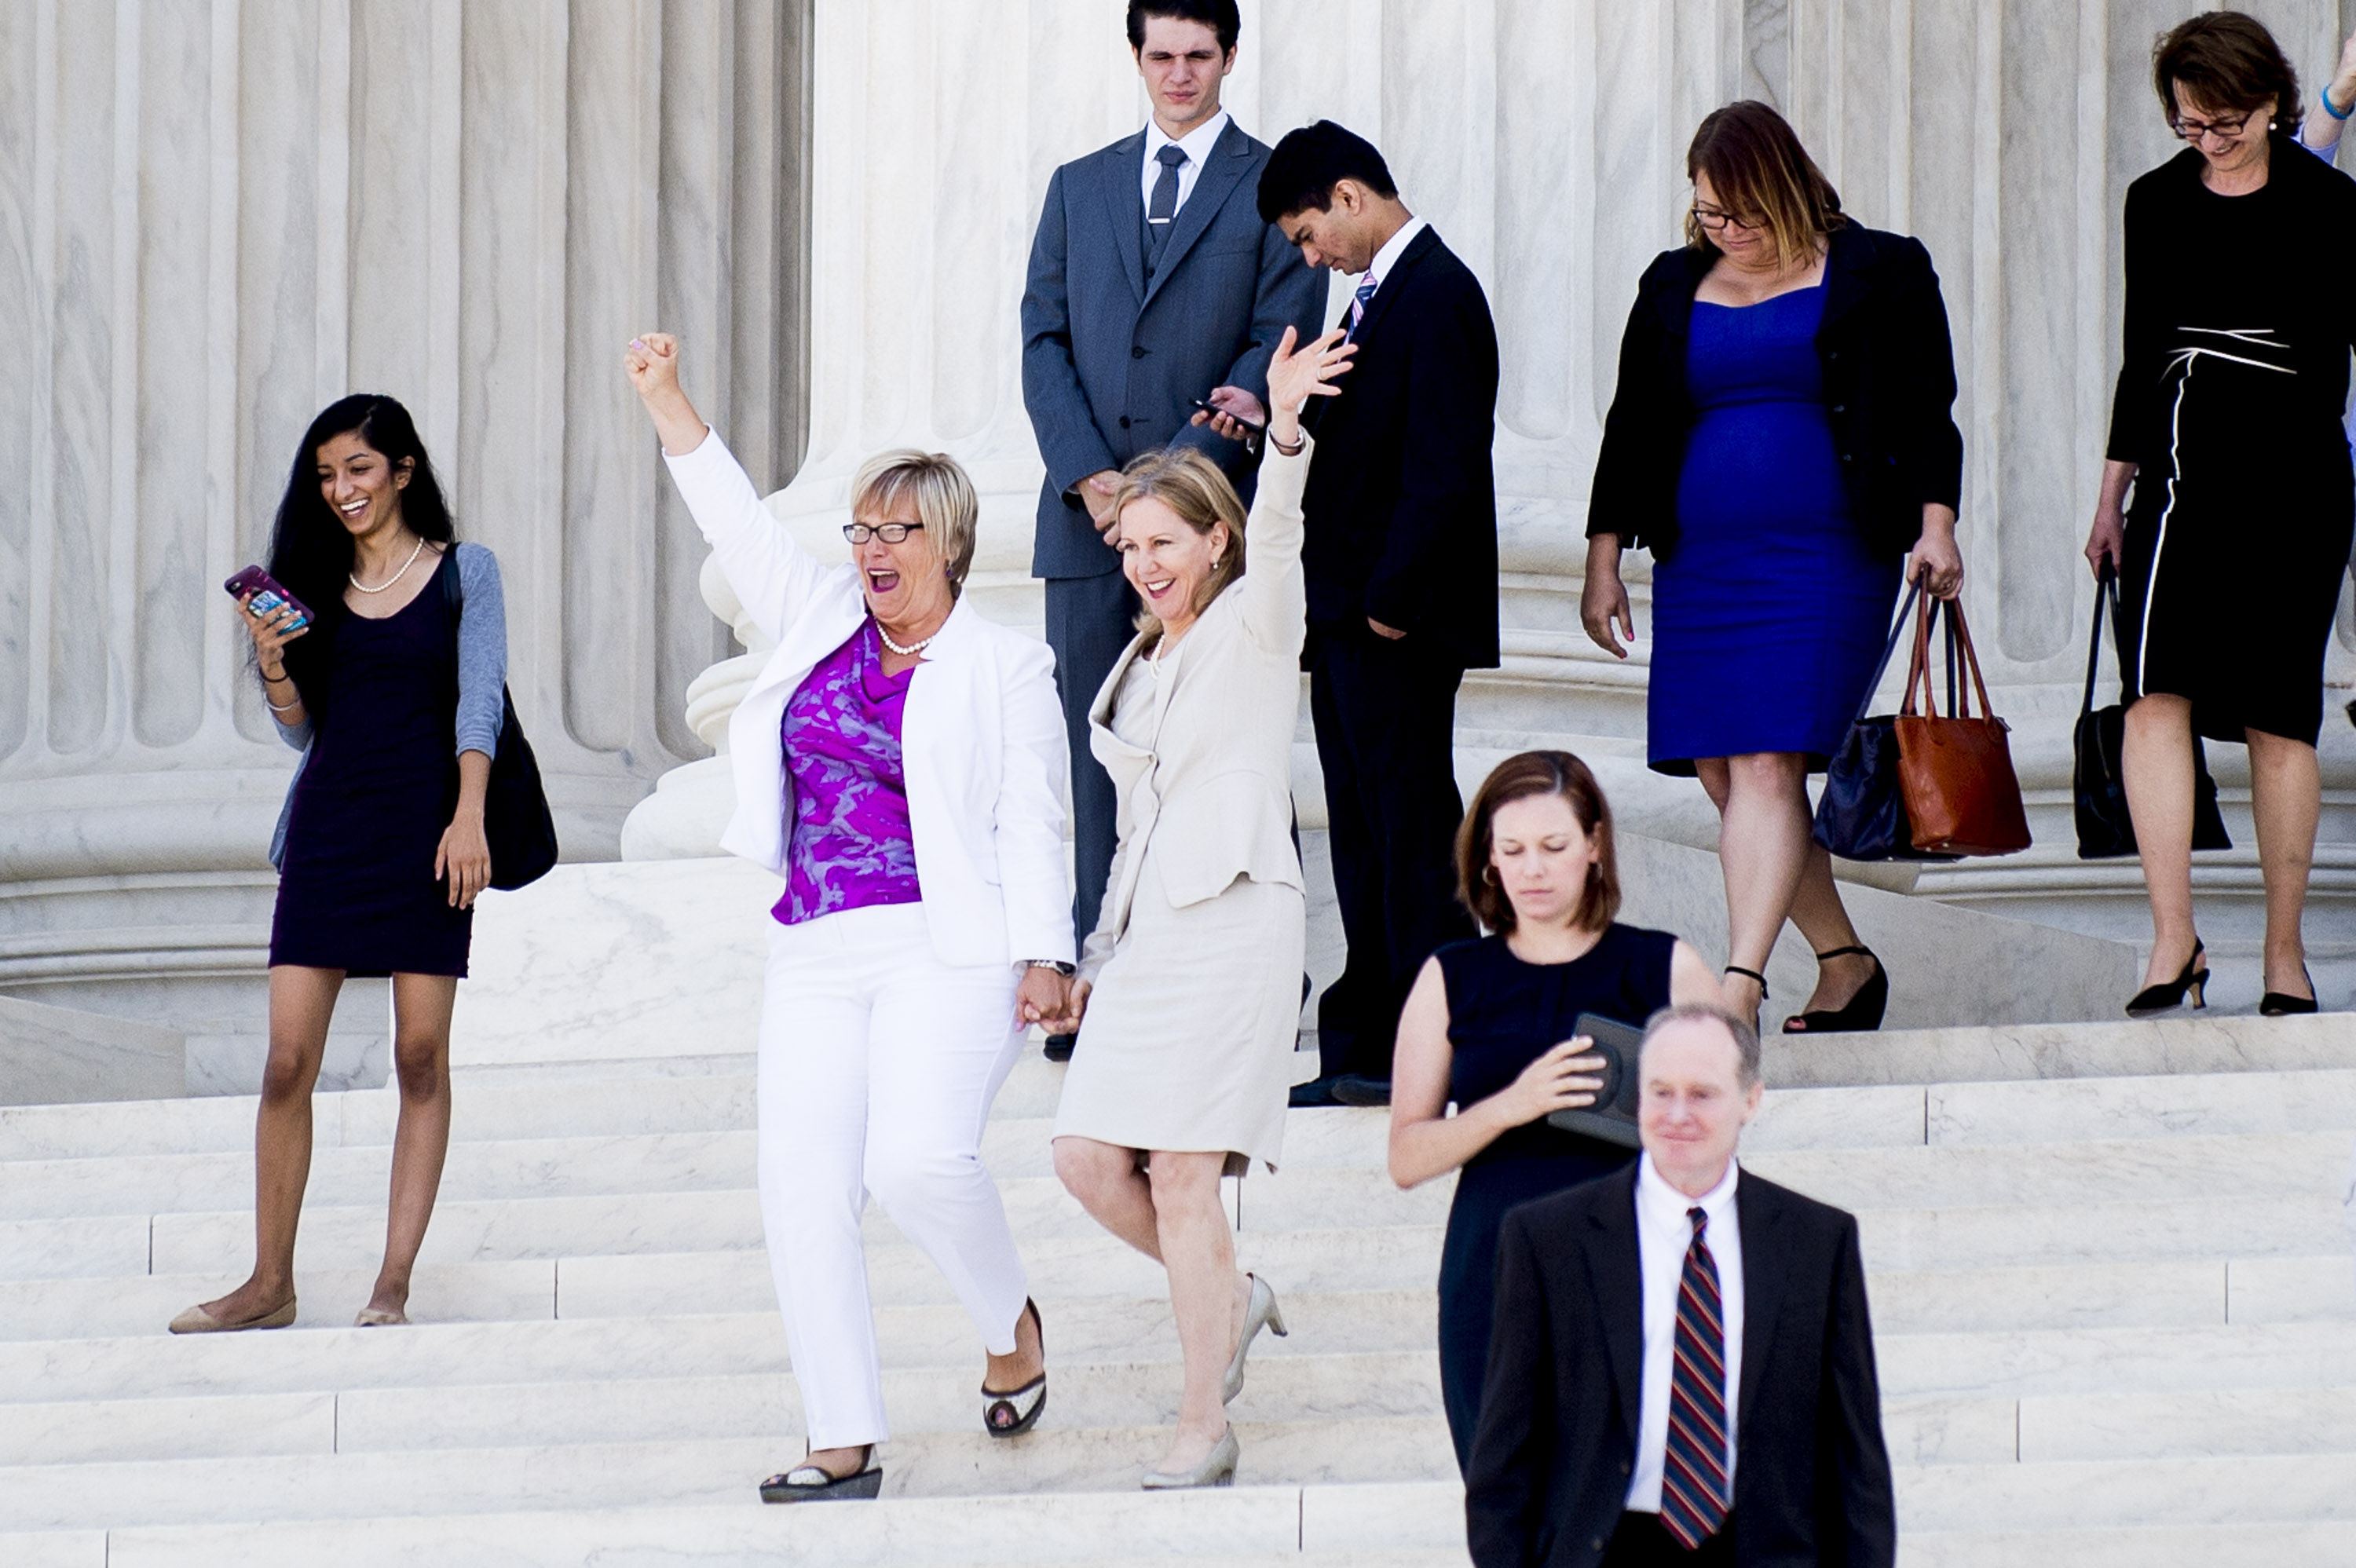 Texas abortion provider Amy Hagstrom-Miller and Nancy Northup, President of The Center for Reproductive Rights, wave to supporters as they descend the steps of the Supreme Court on June 27, 2016. In a 5-3 decision, the Court struck down one of the nation's toughest restrictions on abortion, a Texas law that women's groups said would have forced more than three-quarters of the state's clinics to close.